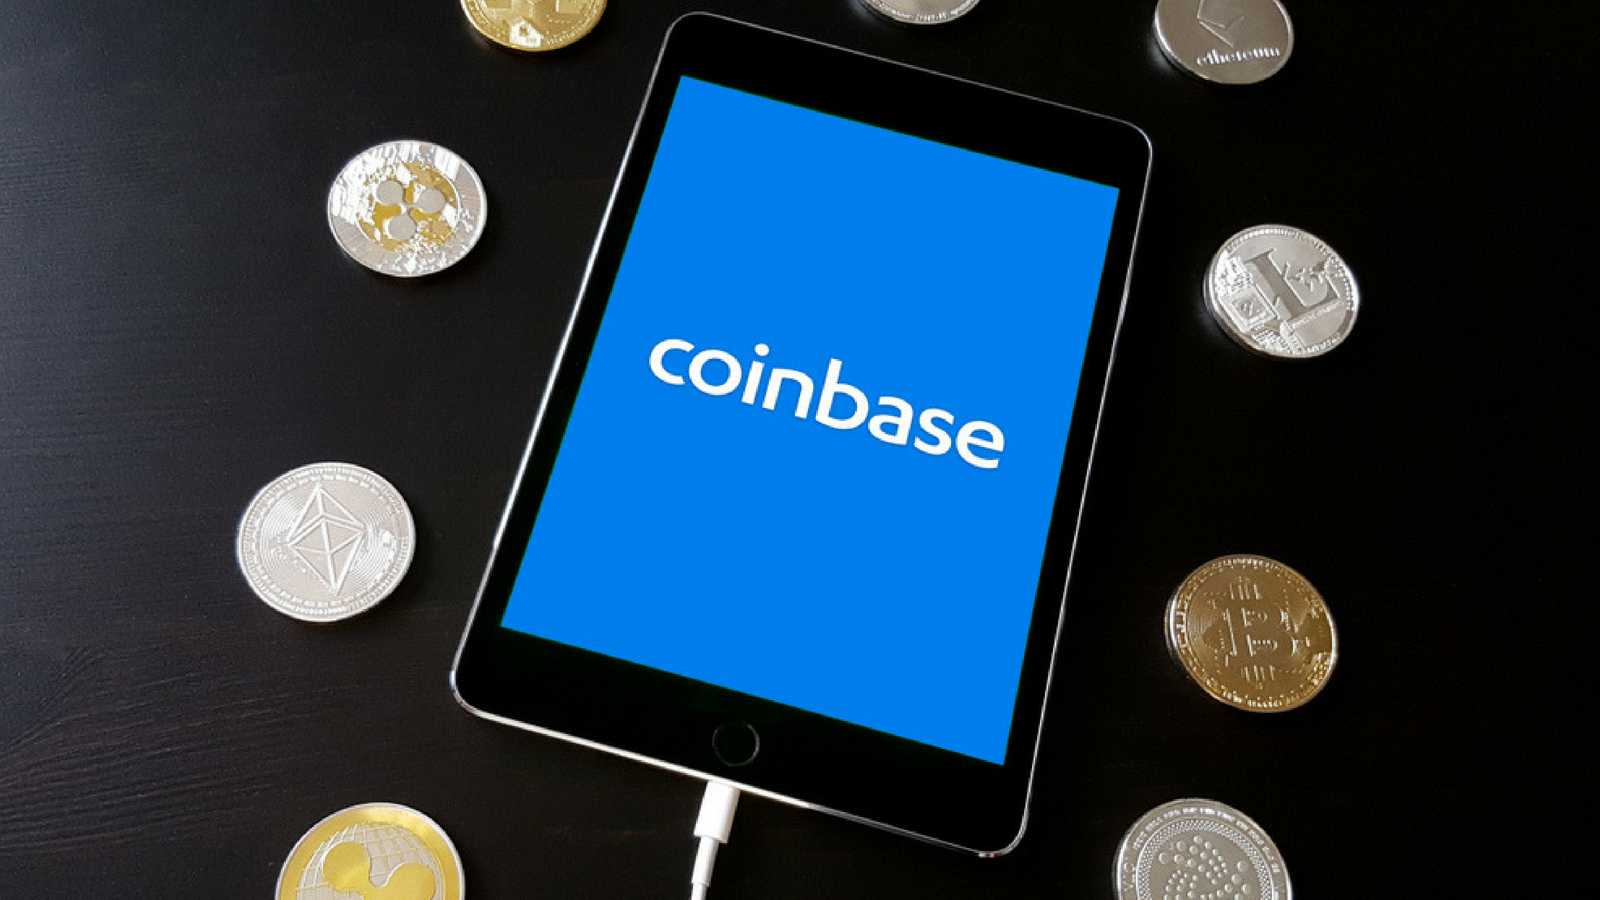 Is Coinbase New Wallet's DApp Support a Direct Threat to Existing DApp Wallets?